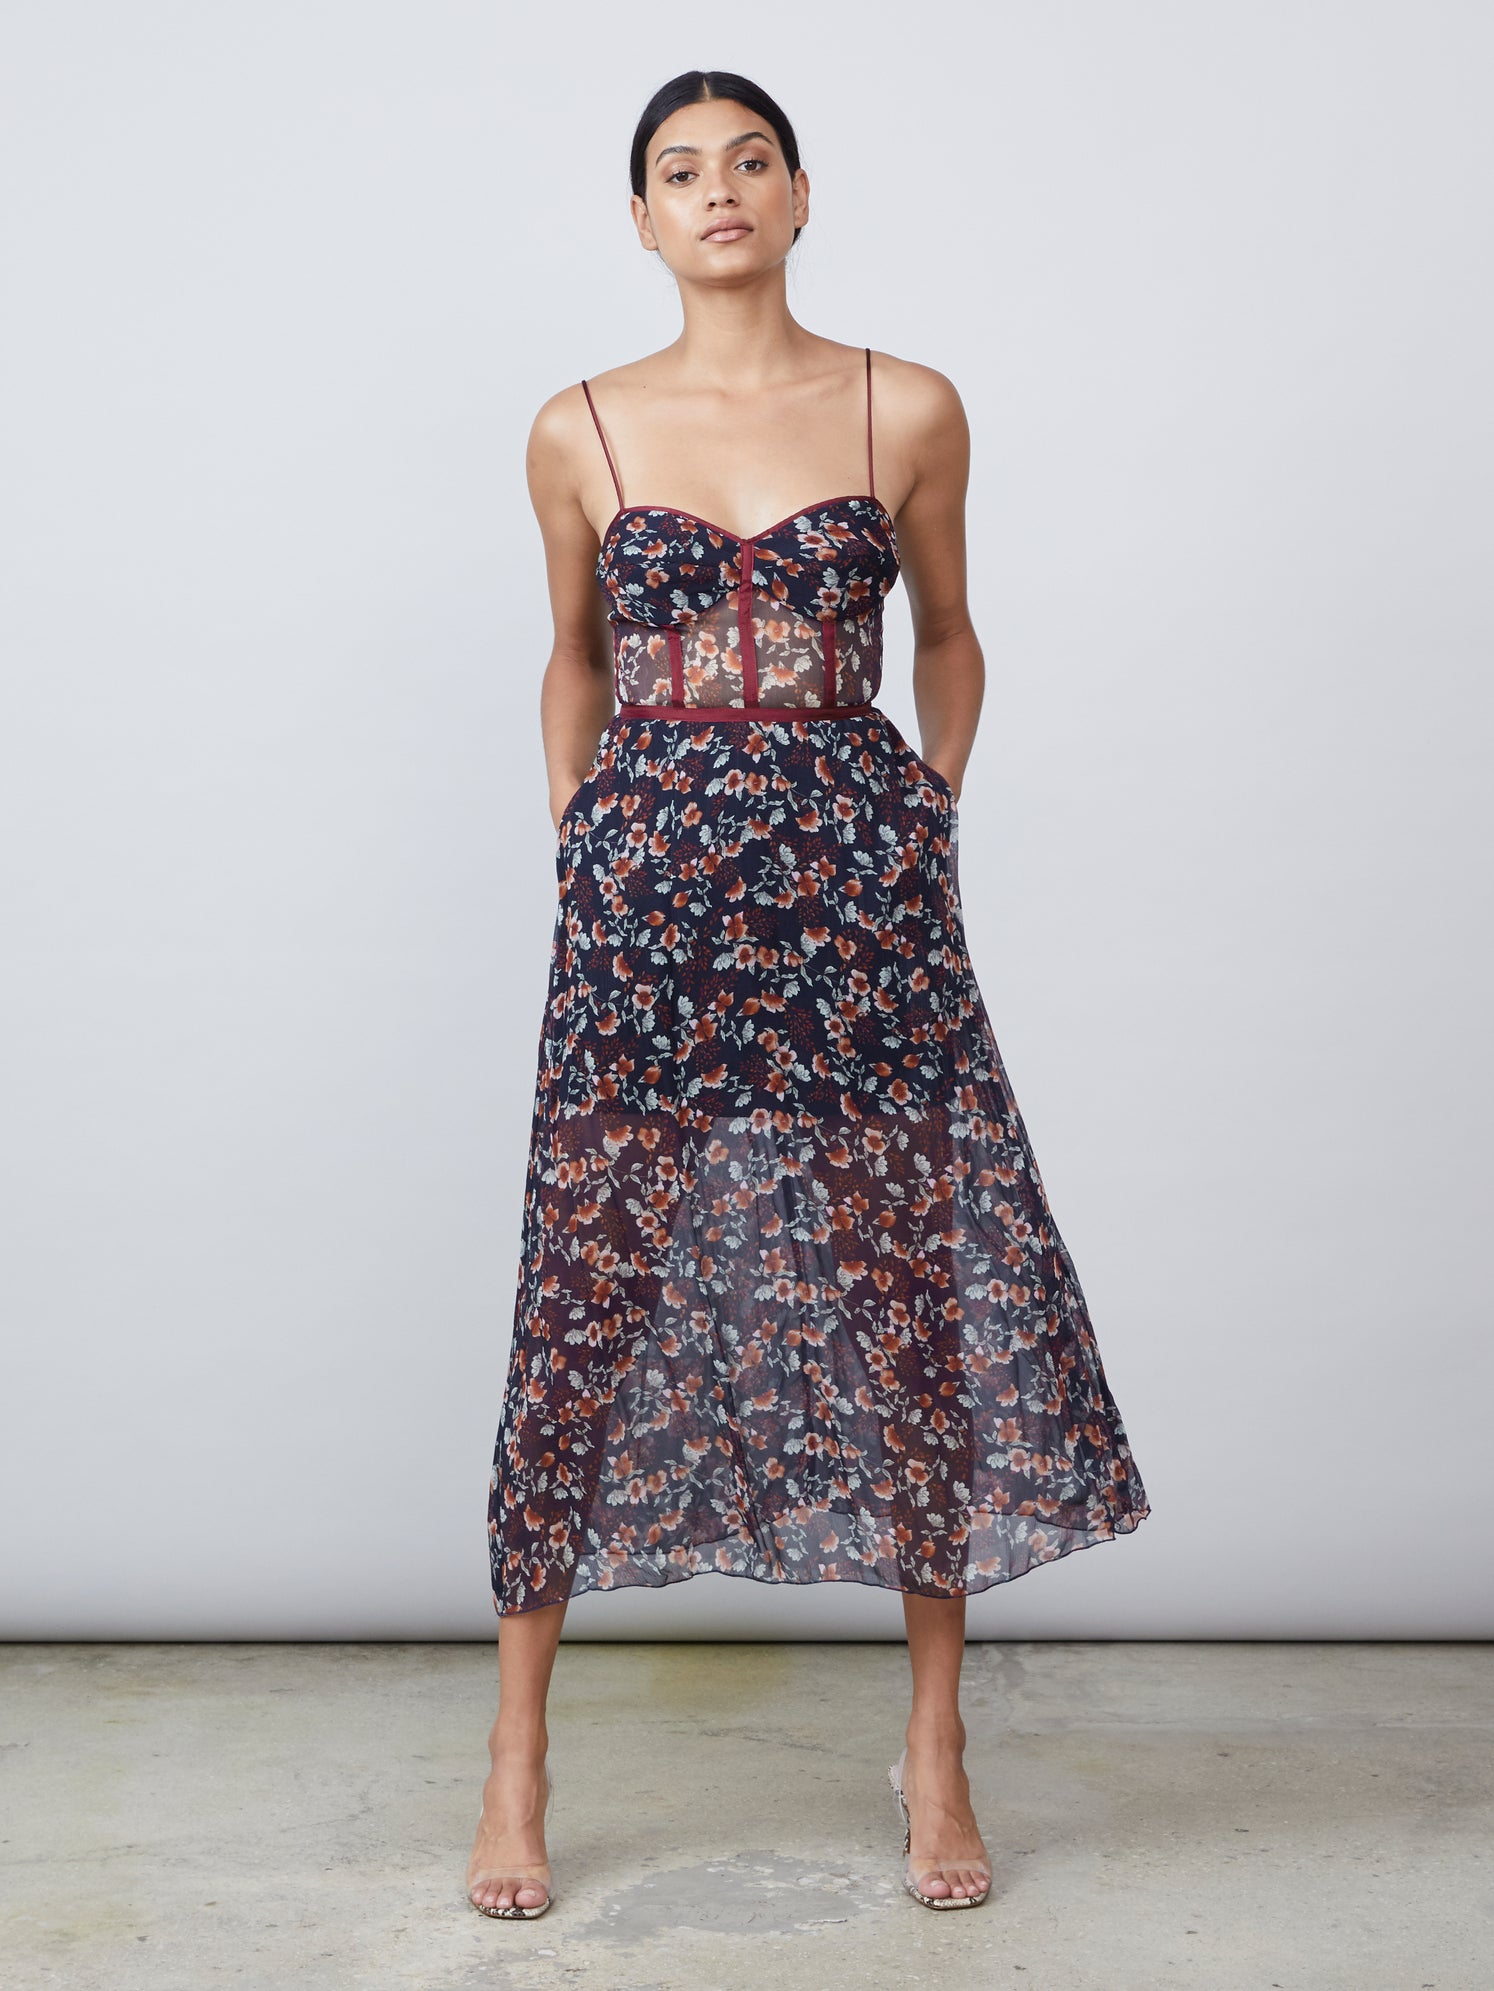 Printed floral crinkle chiffon bustier dress with side pockets